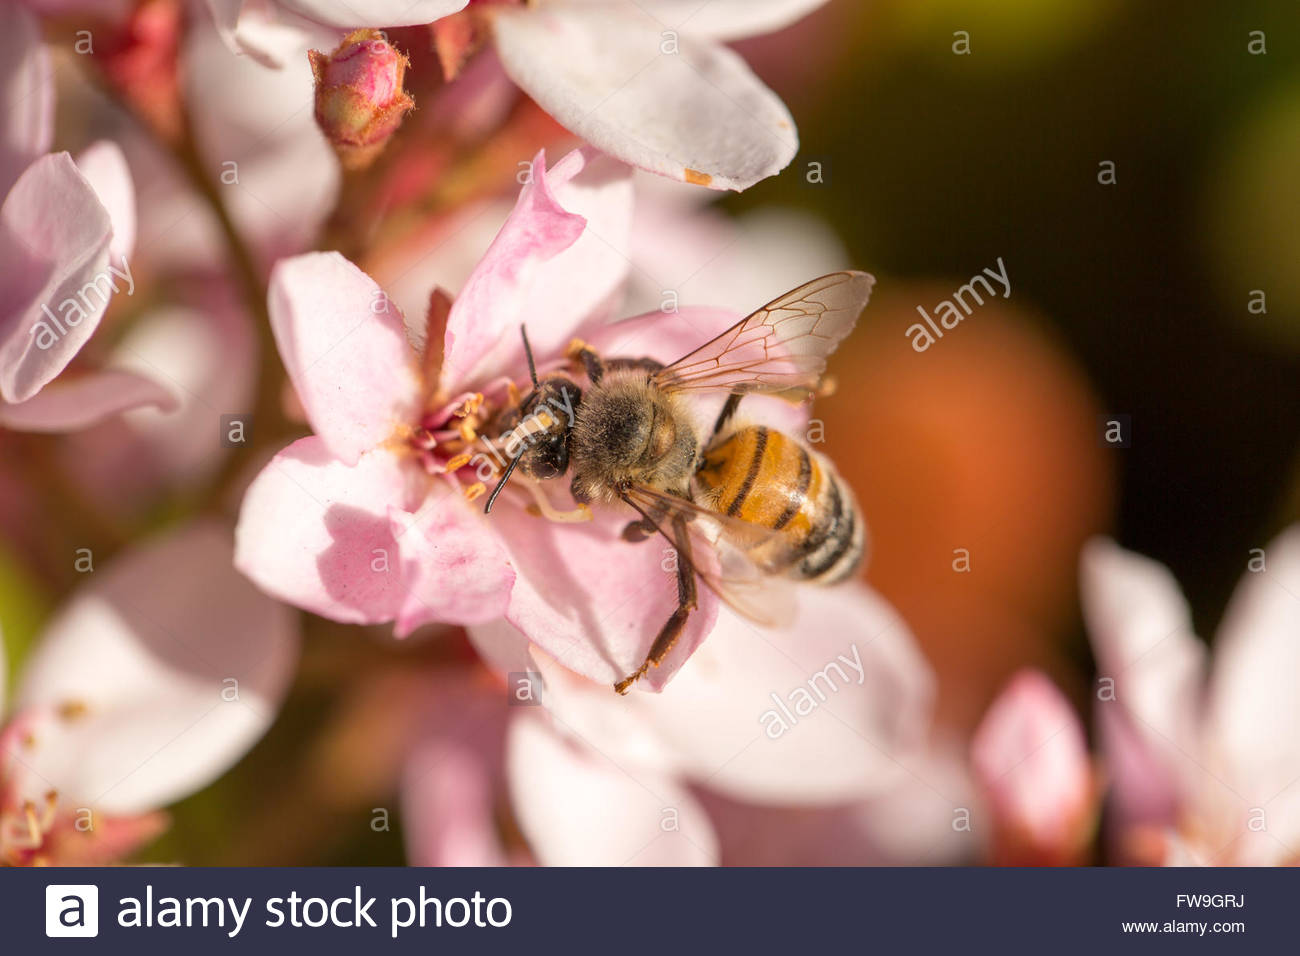 Bee (Anthophila) on white and pink flowers - Stock Image